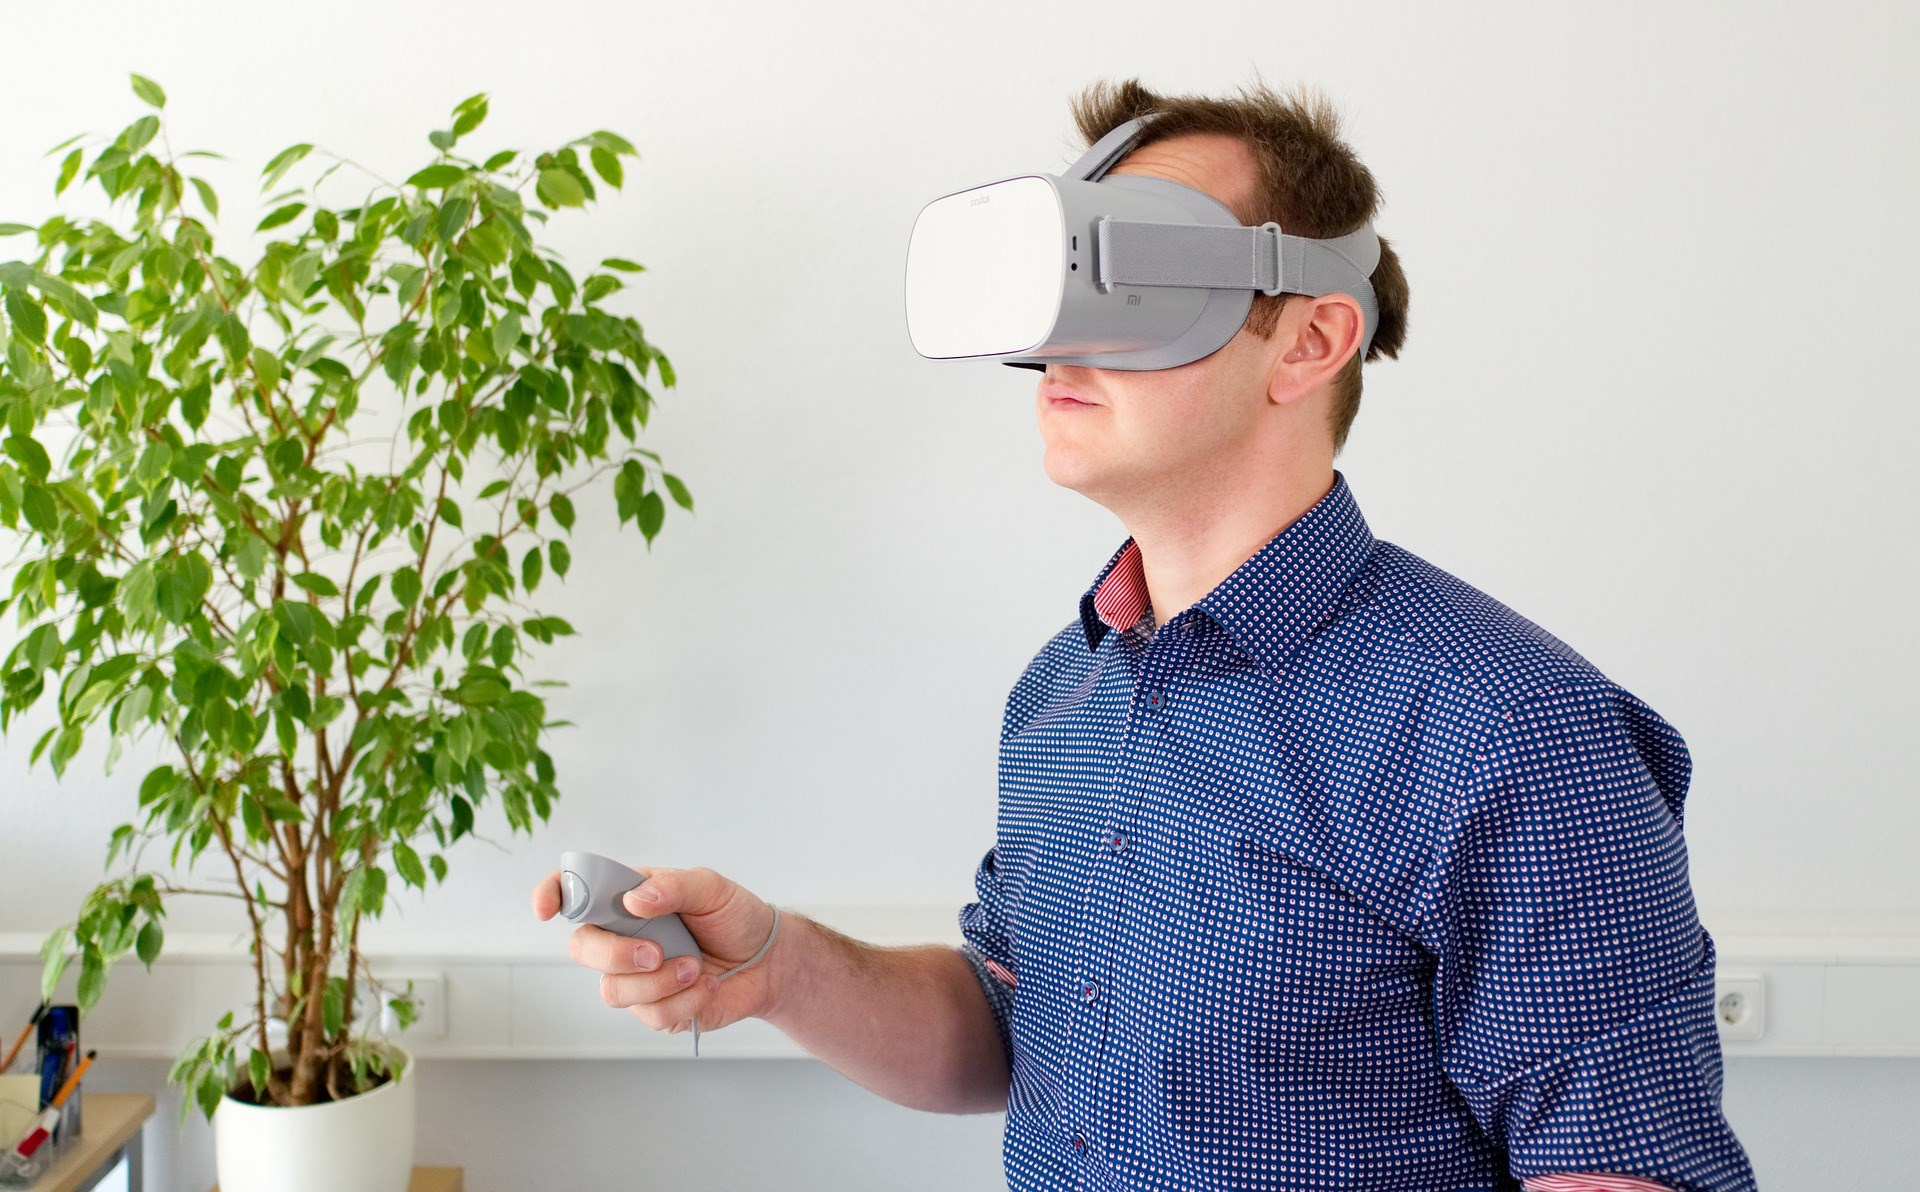 5 reasons why mixed reality will soar in 2018